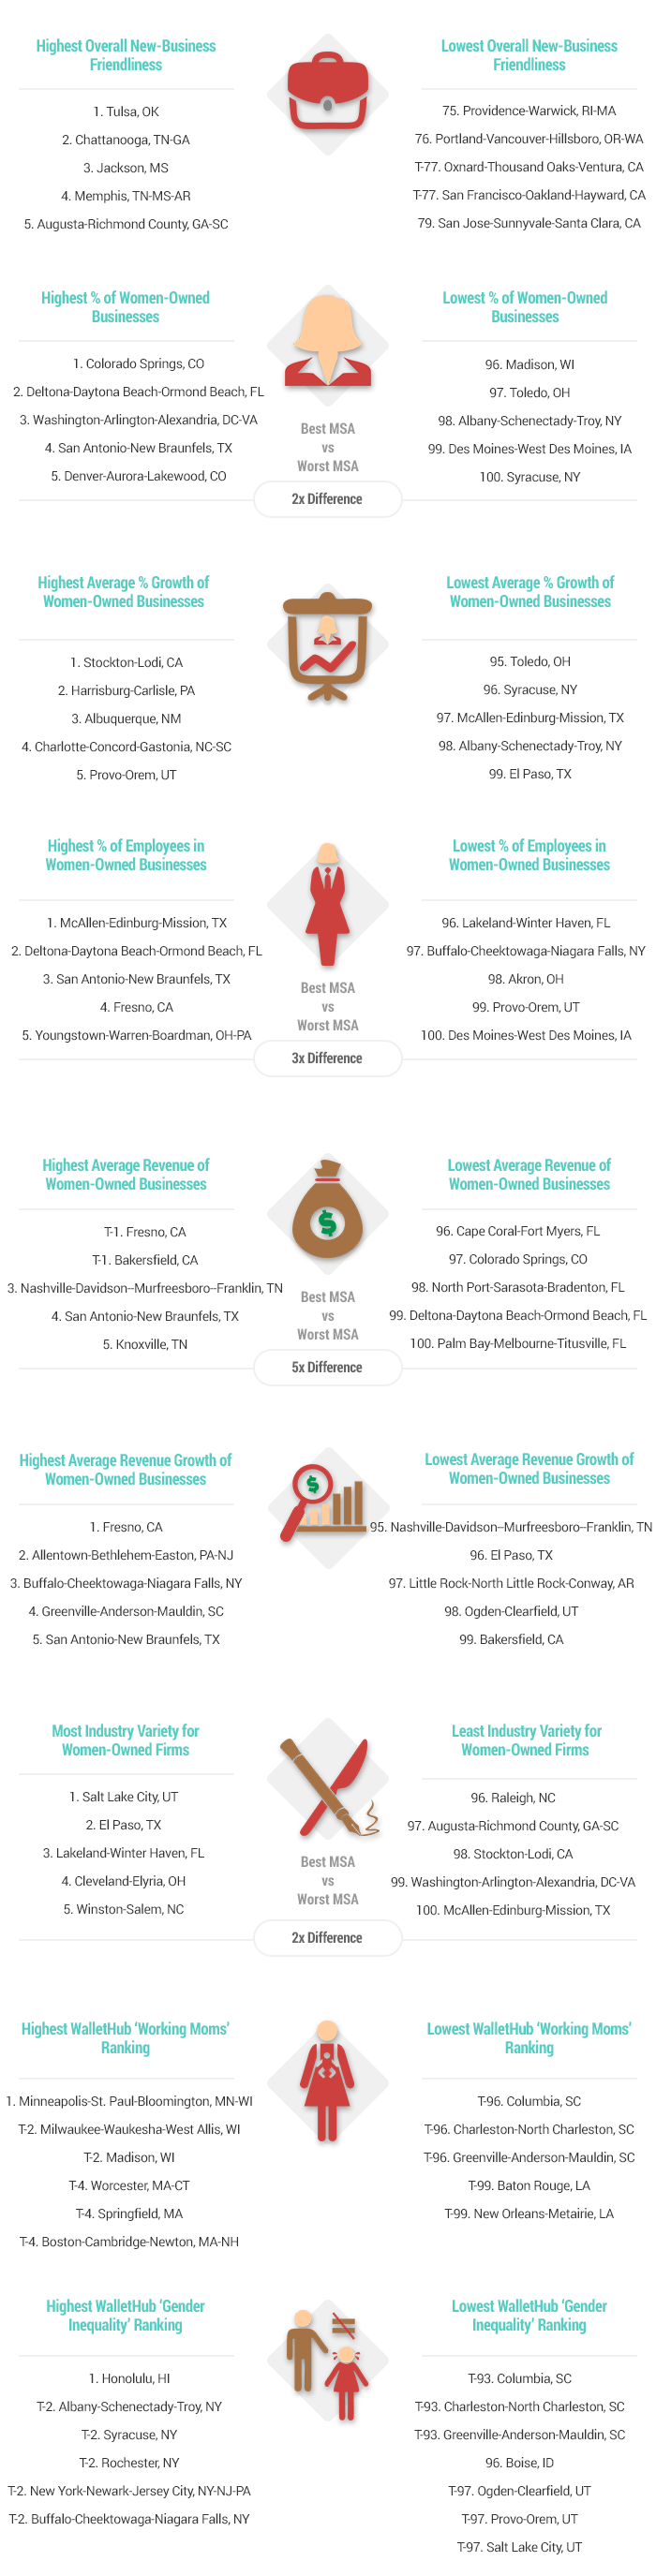 2016 Best and Worst Cities for Women Owned Businesses v2